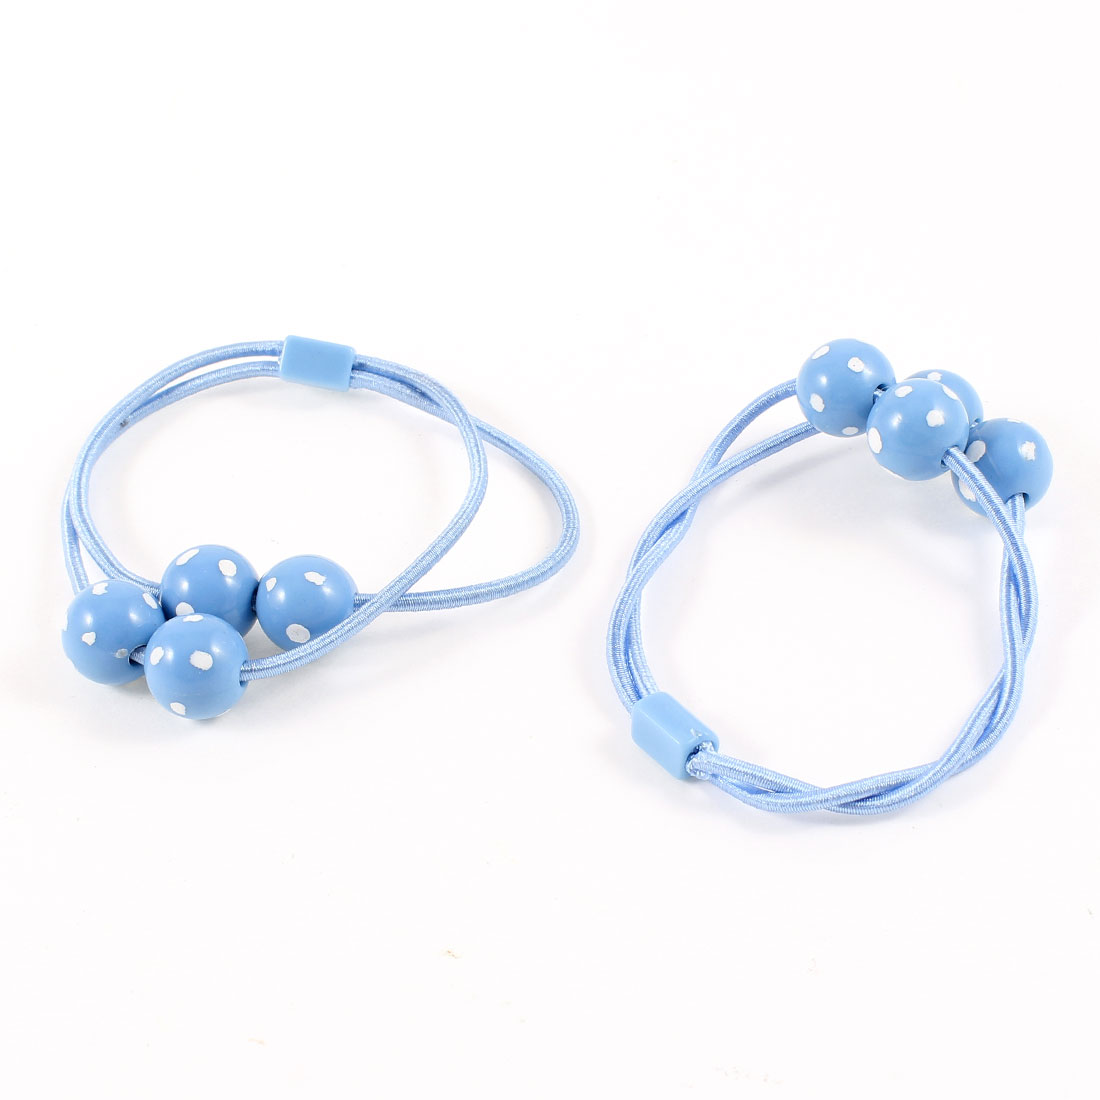 Ligth Blue White Dots Beads Accent Stretch Hair Tie Bands Ponytail Holders Pair